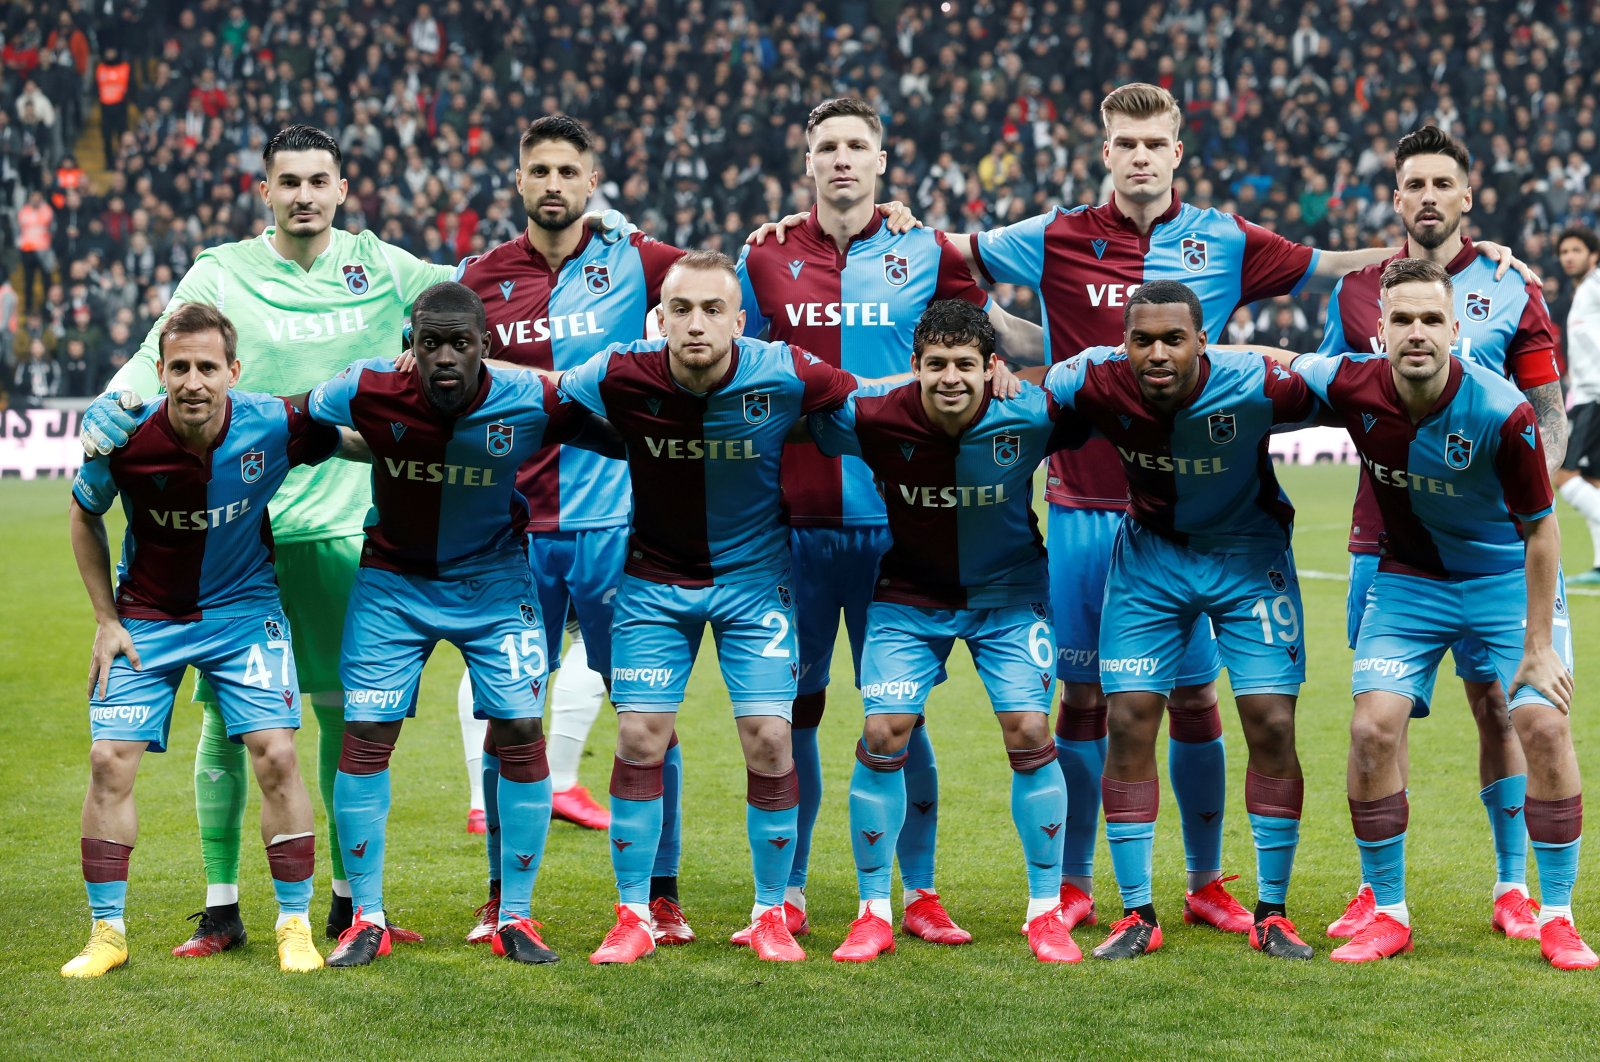 Trabzonspor players pose for a team photo, Vodafone Arena, Istanbul, Turkey, Feb. 22, 2020. (REUTERS Photo)